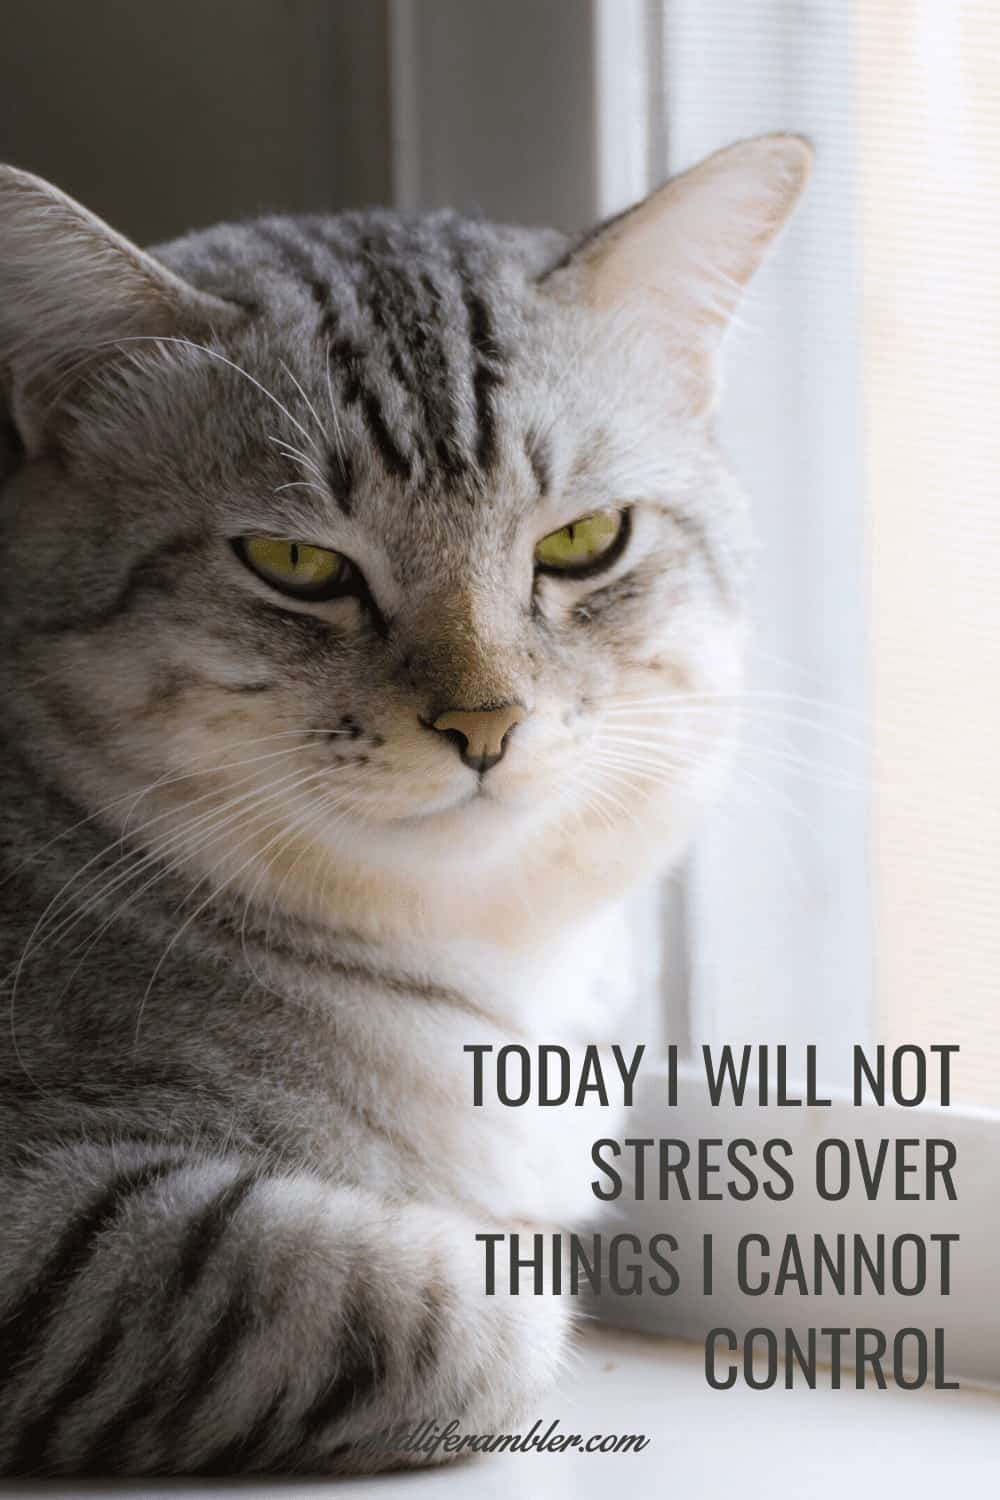 Affirmations for Self-Compassion - Today I will not stress over things I cannot control.